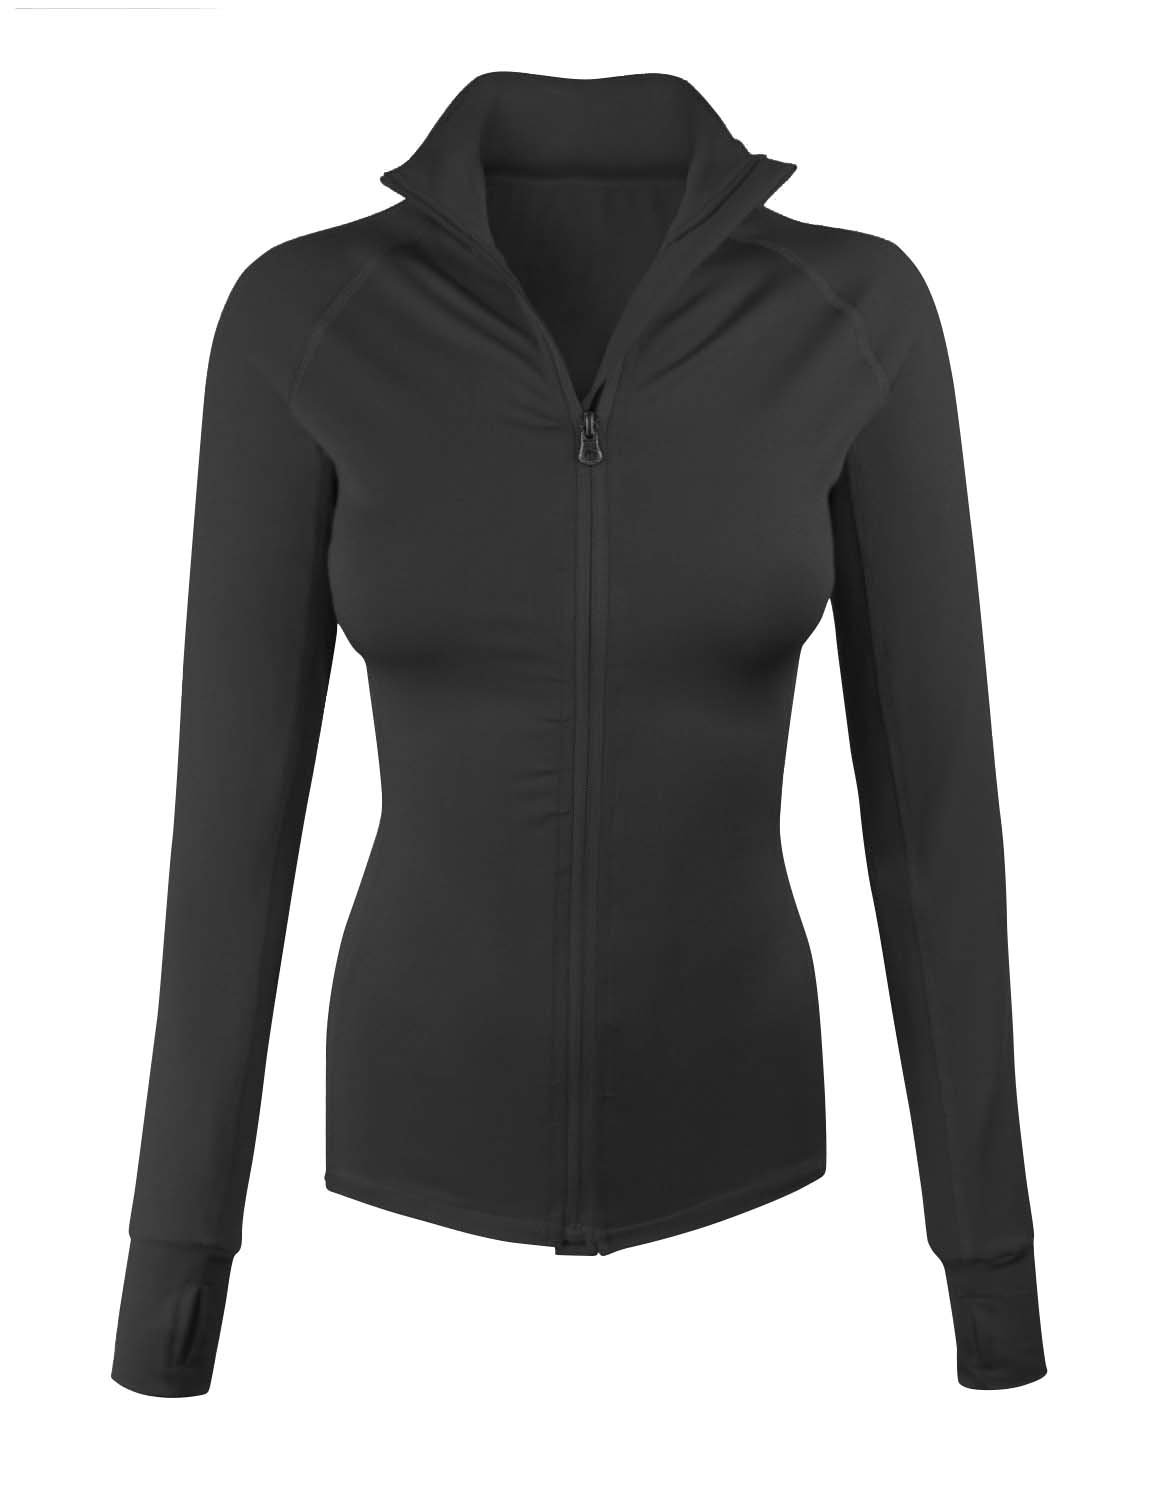 makeitmint Women's Comfy Zip Up Stretchy Work Out Track Jacket w/ Back Pocket SMALL YJZ0002_02CHARCOAL